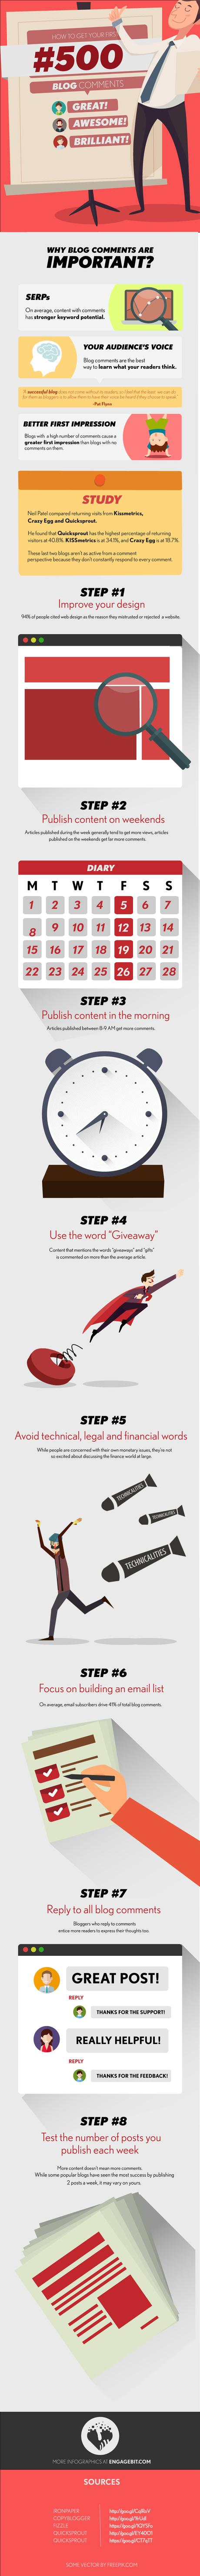 How To Get Your First 500 Blog Comments Infographic